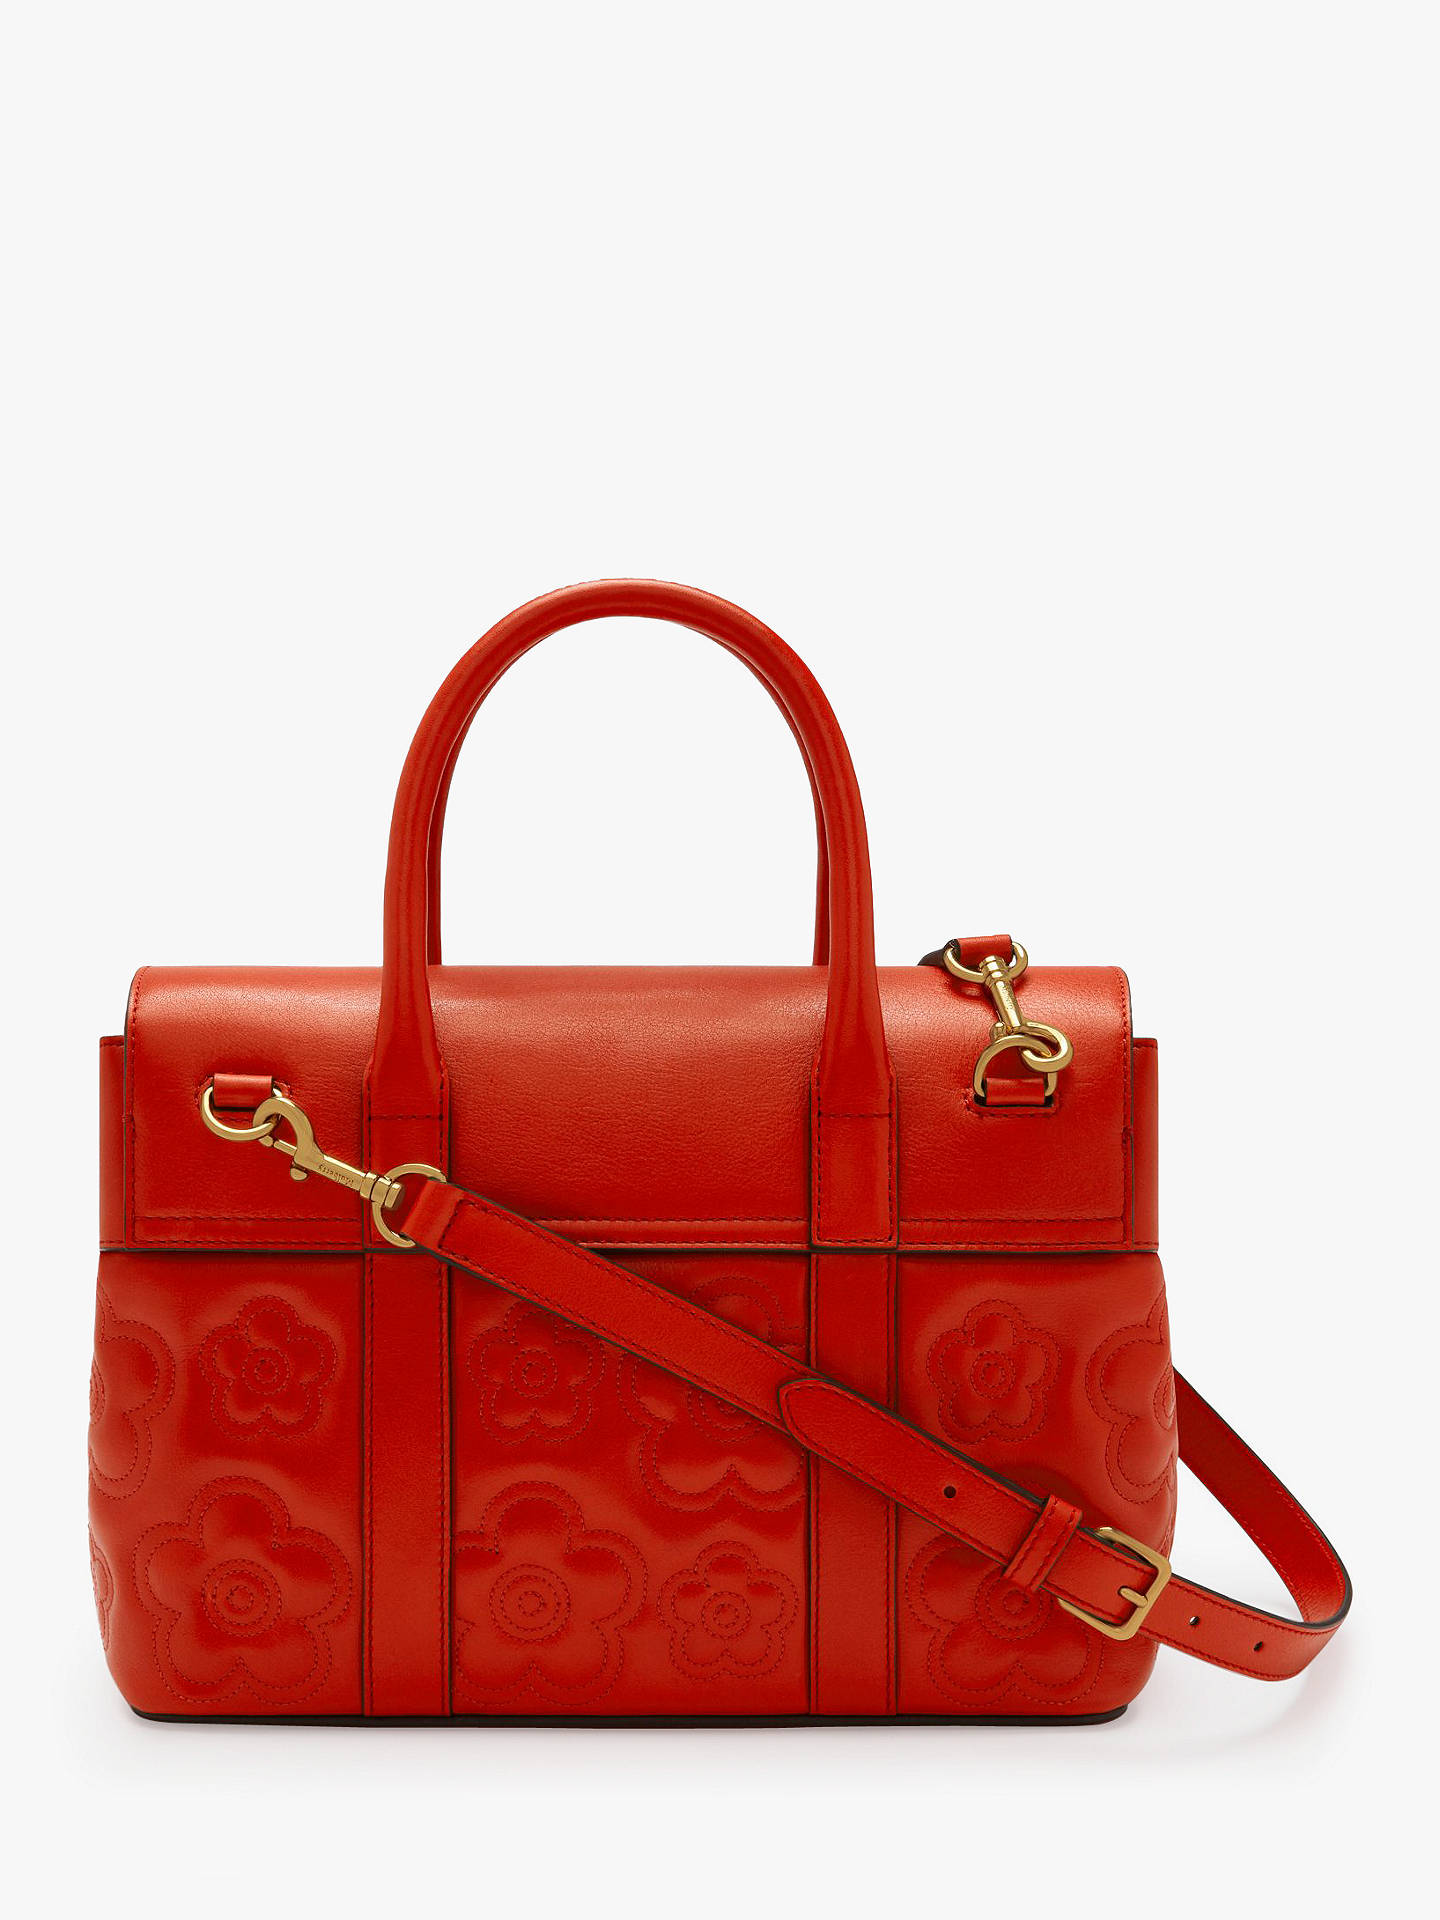 e08bb23d13 ... Buy Mulberry Bayswater Silky Calf Leather Quilted Flower Small Tote  Bag, Hibiscus Red Online at ...